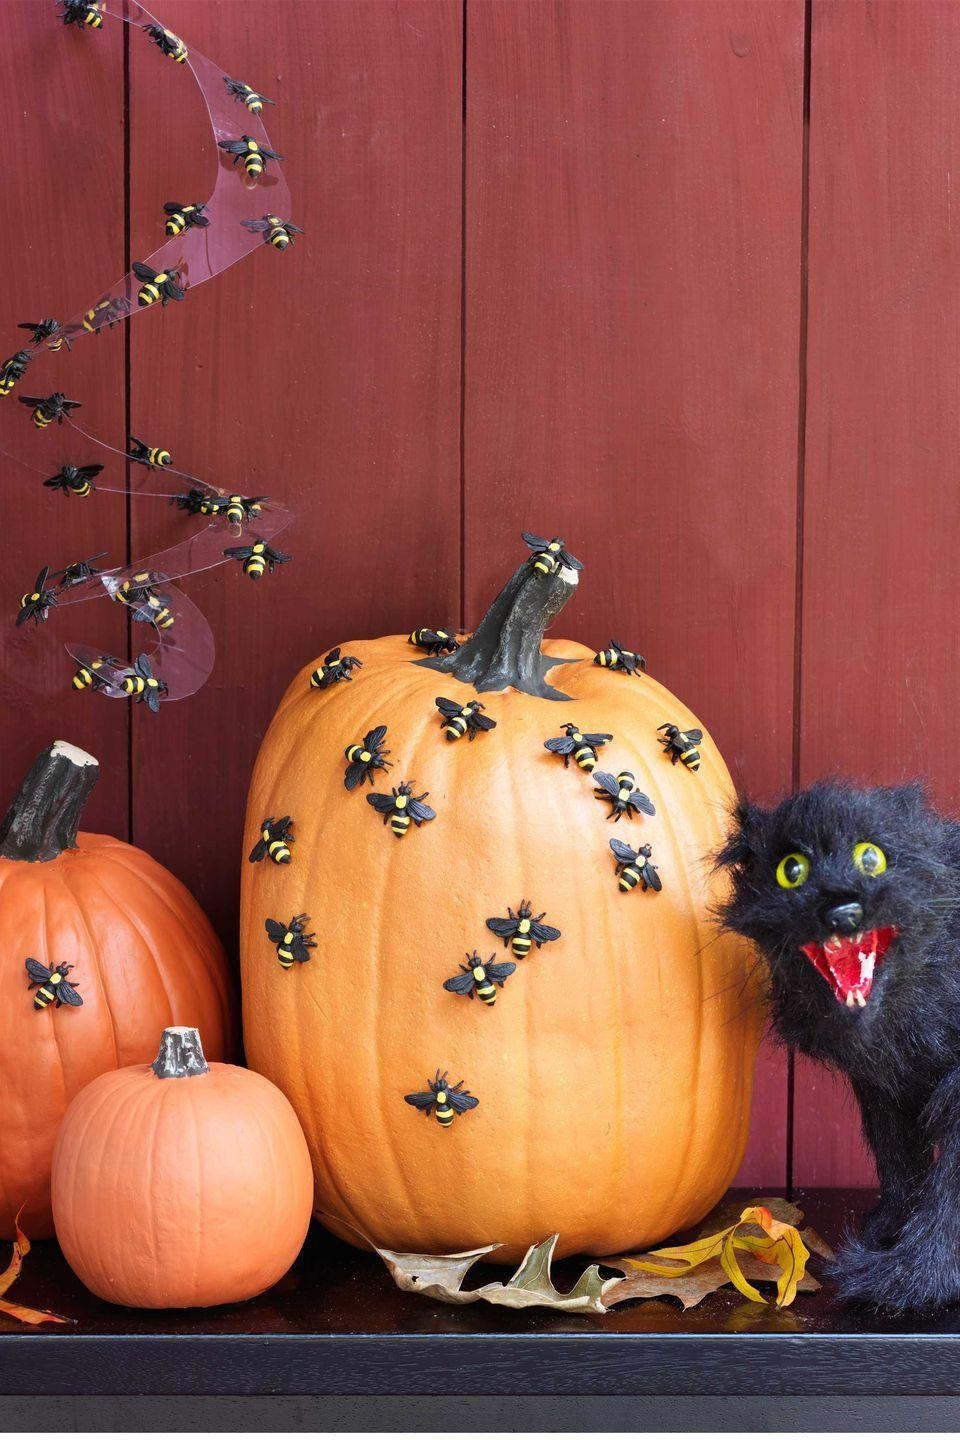 """<p>The appearance of bugs hovering over your <span class=""""redactor-unlink"""">pumpkin display</span> will frighten — and delight — little guests. Cut a sheet of <span class=""""redactor-unlink"""">acetate</span> into a 24""""-diameter circle. Starting from the outside, cut in a spiral about 1½"""" wide, leaving a small circle in the middle. Hang the spiral from its widest part. Stick about 40 craft bees to the pumpkins and top and bottom of the acetate.</p><p><strong>What You'll Need</strong>: <a href=""""https://www.amazon.com/10pcs-Yellow-Bumble-Cabochons-Animals/dp/B07D9PWCC9/ref=sr_1_2_sspa?dchild=1&keywords=craft+bees&qid=1594998452&sr=8-2-spons&psc=1&spLa=ZW5jcnlwdGVkUXVhbGlmaWVyPUExUkdTNTVFRU9WSk9DJmVuY3J5cHRlZElkPUExMDAxMDY0MUVDN1pKNUw5QVpSNyZlbmNyeXB0ZWRBZElkPUEwMjAyMDU5MjJMSEFaQ1pXRjZDWSZ3aWRnZXROYW1lPXNwX2F0ZiZhY3Rpb249Y2xpY2tSZWRpcmVjdCZkb05vdExvZ0NsaWNrPXRydWU%3D&tag=syn-yahoo-20&ascsubtag=%5Bartid%7C10070.g.1279%5Bsrc%7Cyahoo-us"""" rel=""""nofollow noopener"""" target=""""_blank"""" data-ylk=""""slk:Craft bees"""" class=""""link rapid-noclick-resp"""">Craft bees</a> ($9, Amazon)</p>"""